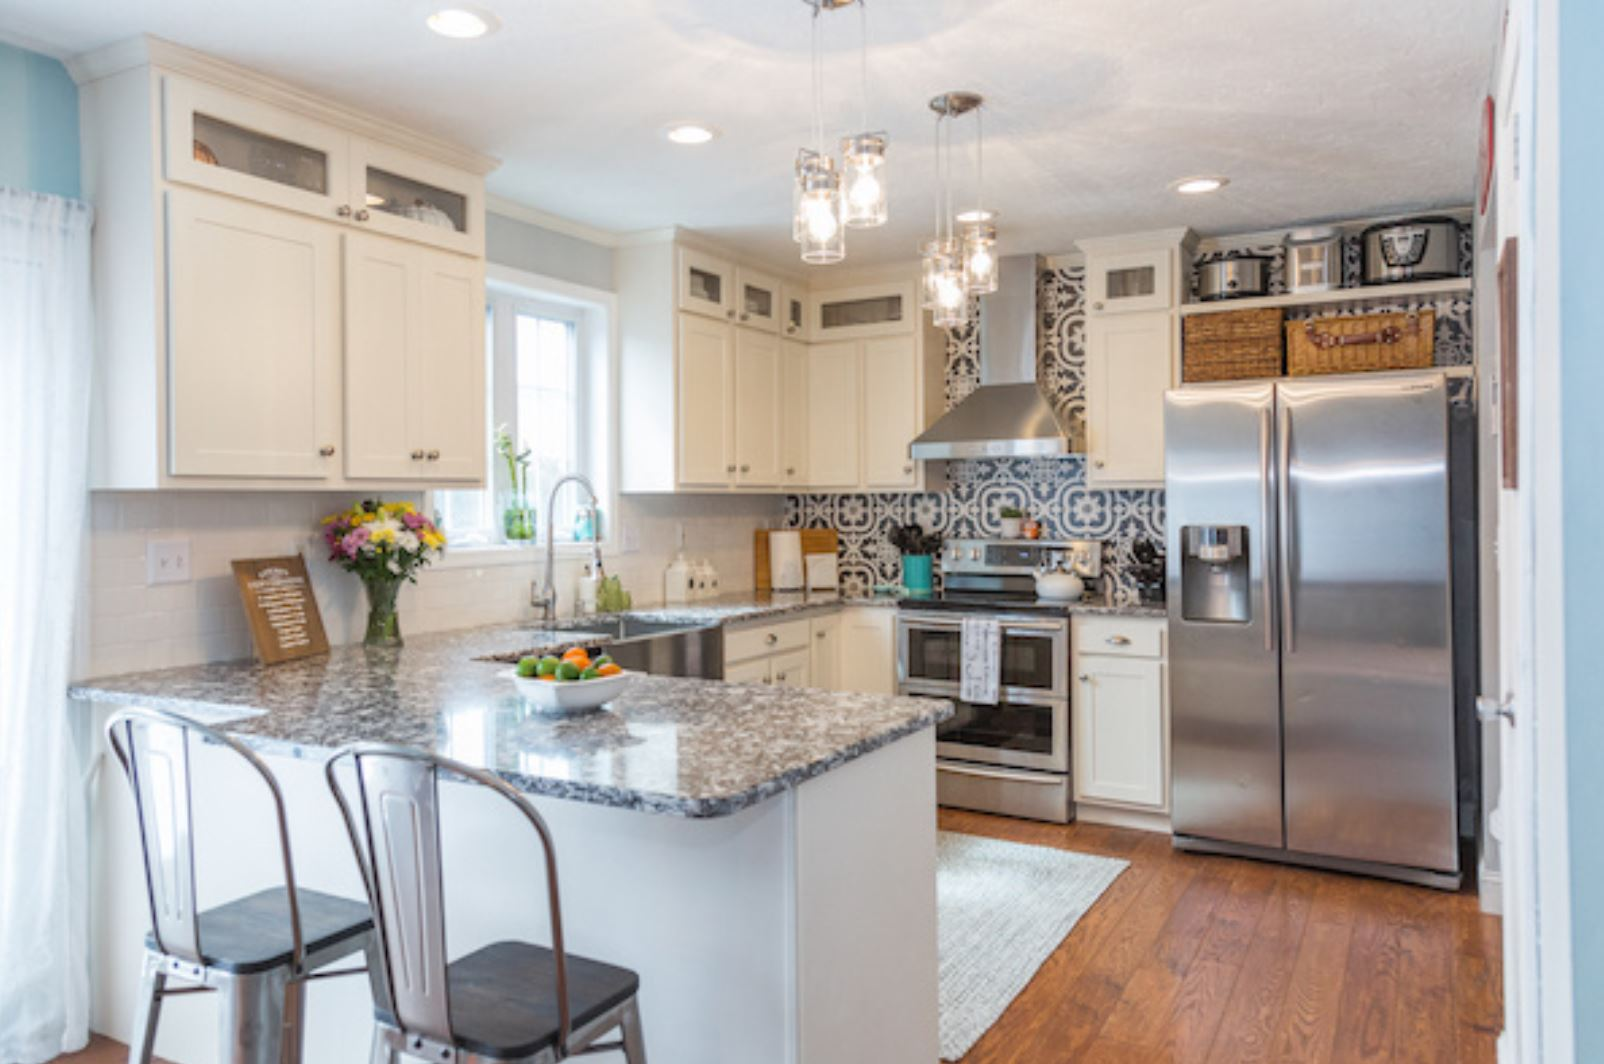 Realtor Magazine 2021 03 15 Ten Kitchen Changes sought out by buyers in 2021 since the begining of the plandemic after going through the COVID-19 Coronavirus pandemic Hoey Team exp Realty 04